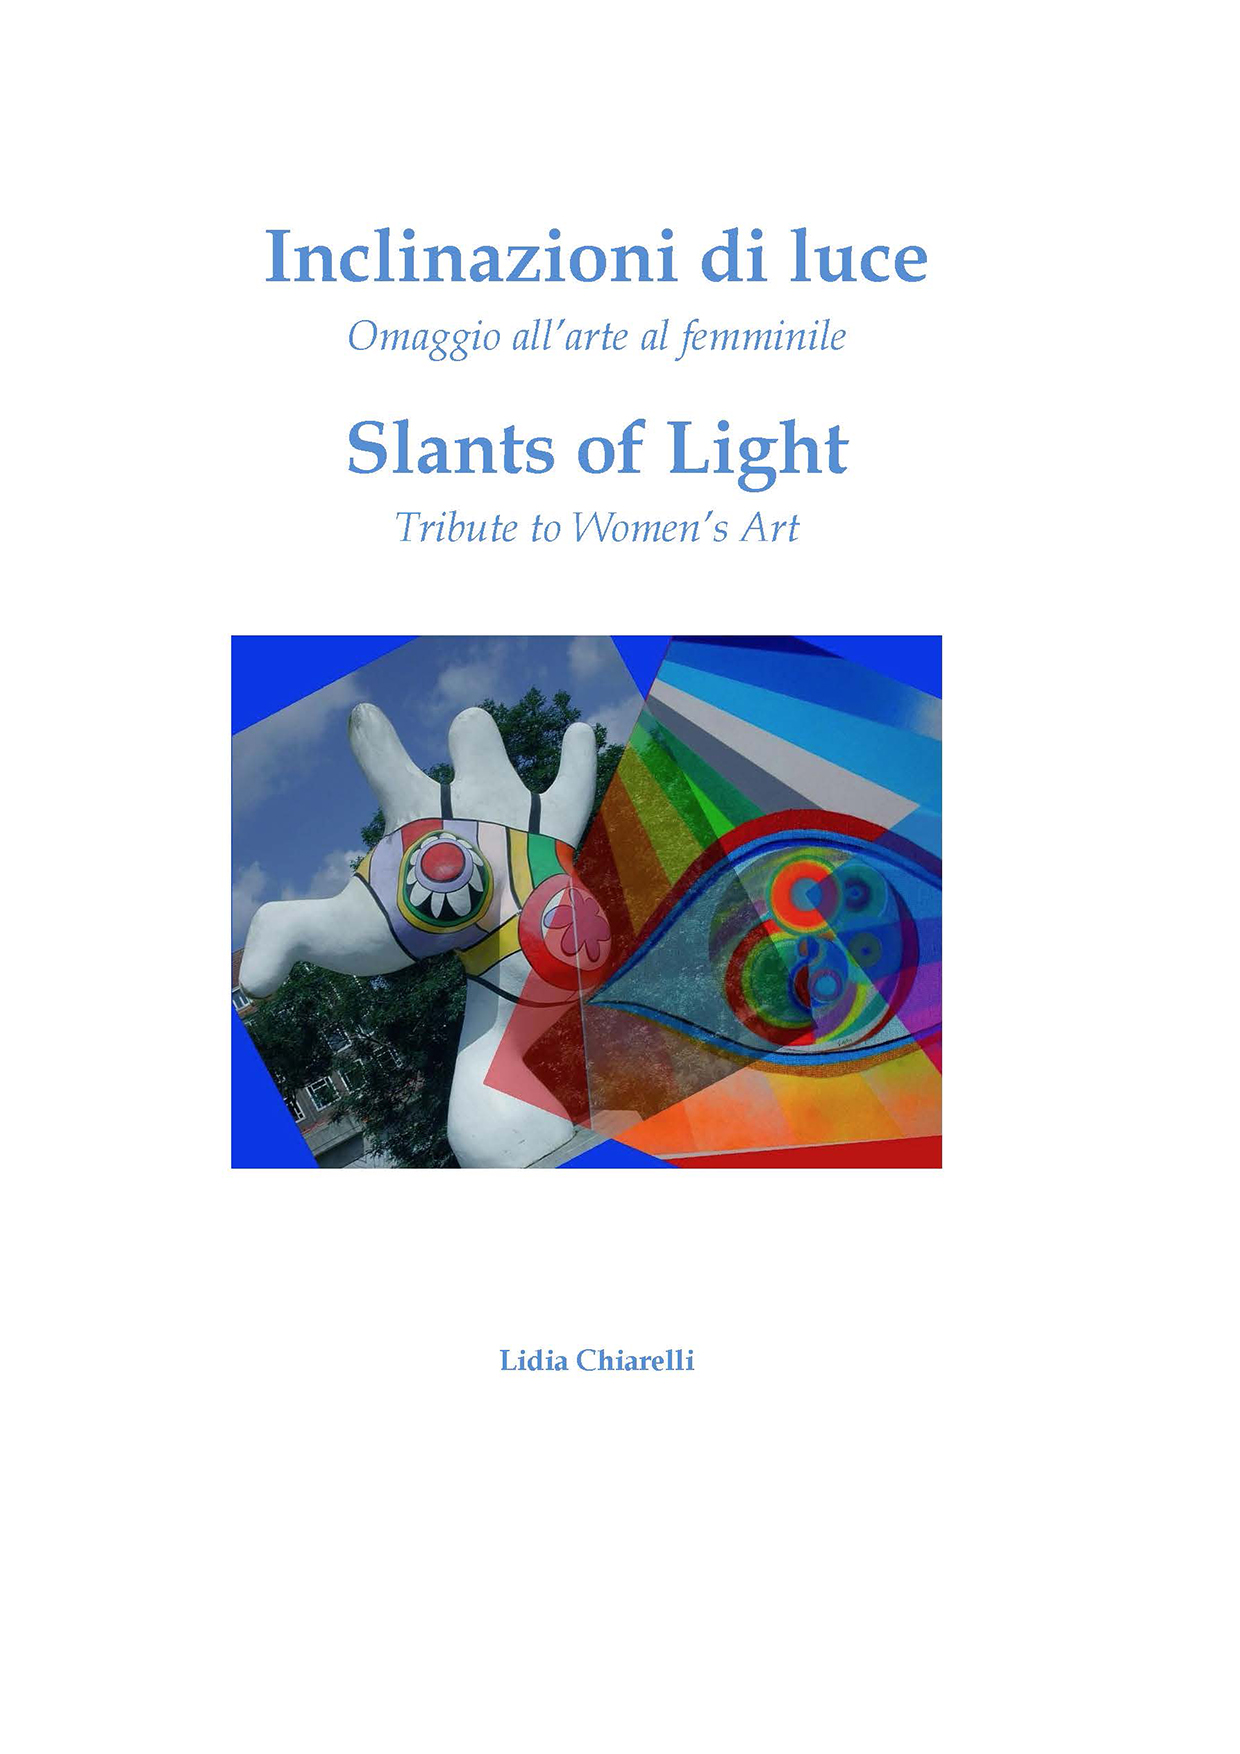 Slants of Light: Tribute to Women's Art / Inclinazionid di luc: Omaggio all'arte al femminile